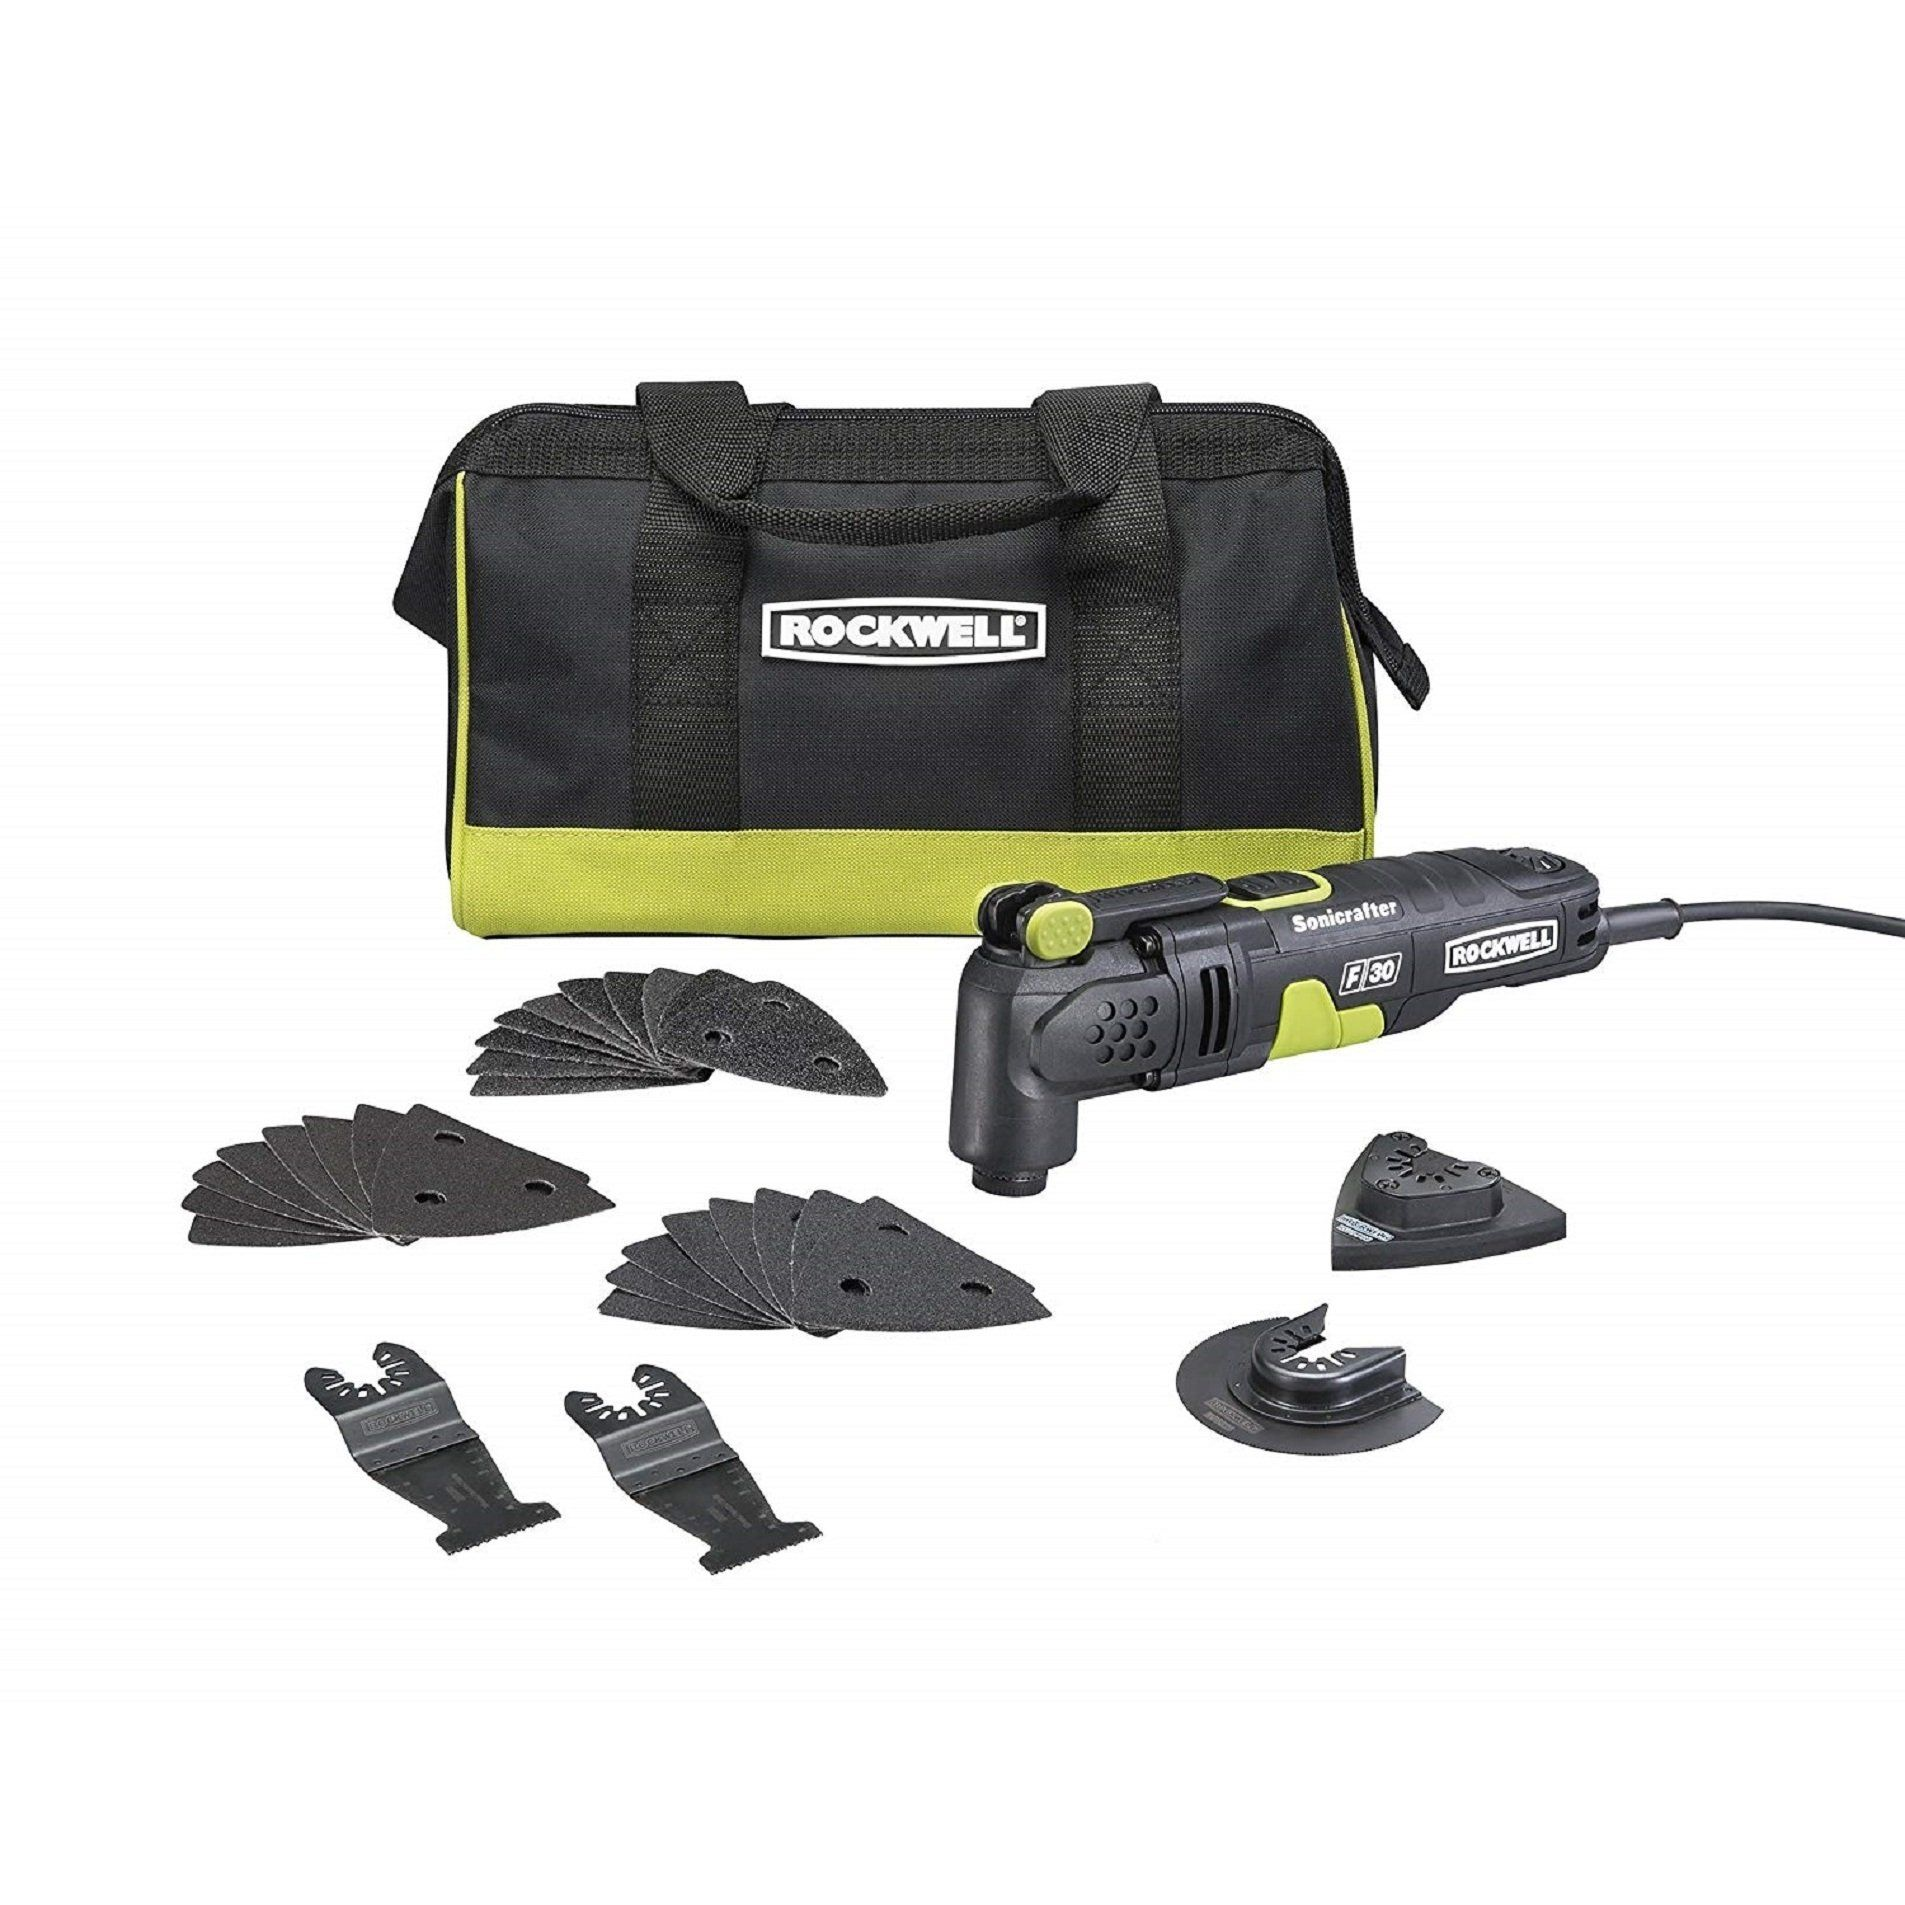 Rockwell Rk5132k 3 5 Amp Sonicrafter F30 Oscillating Multi Tool With 32 Accessories And Carry Bag Multitool Oscillating Tool Bags